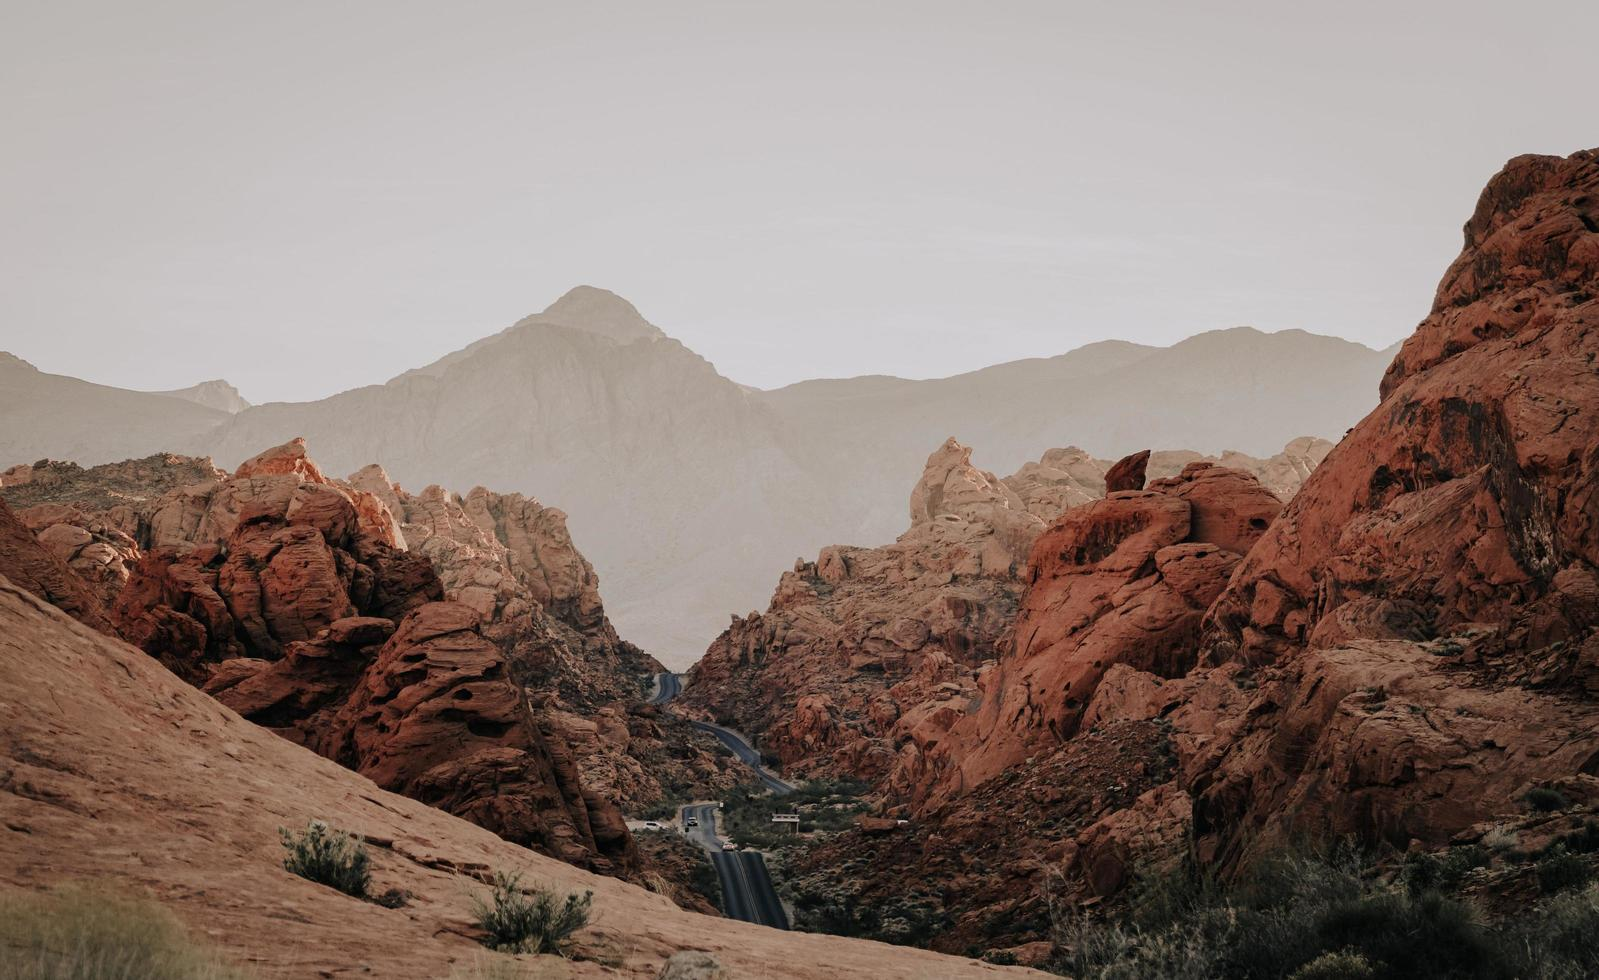 Brown rock formations in the desert photo